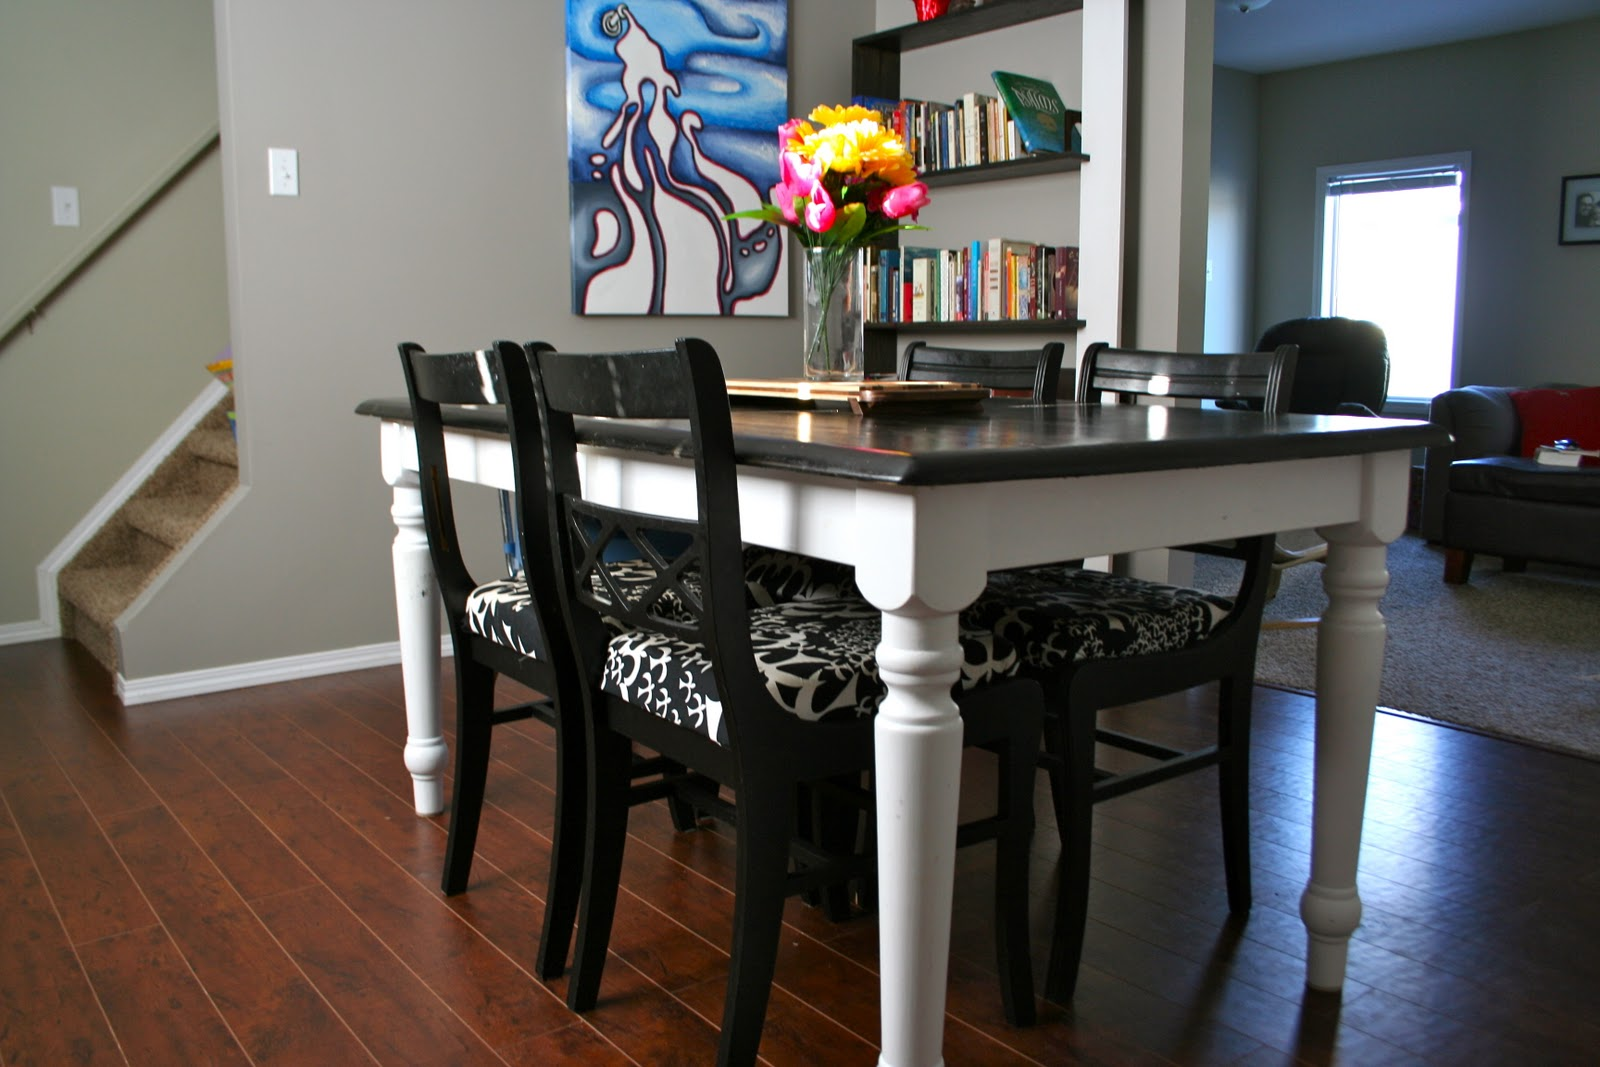 Journey 39 s of an artist mom refinishing a dining room table - Refinish contemporary dining room tables ...